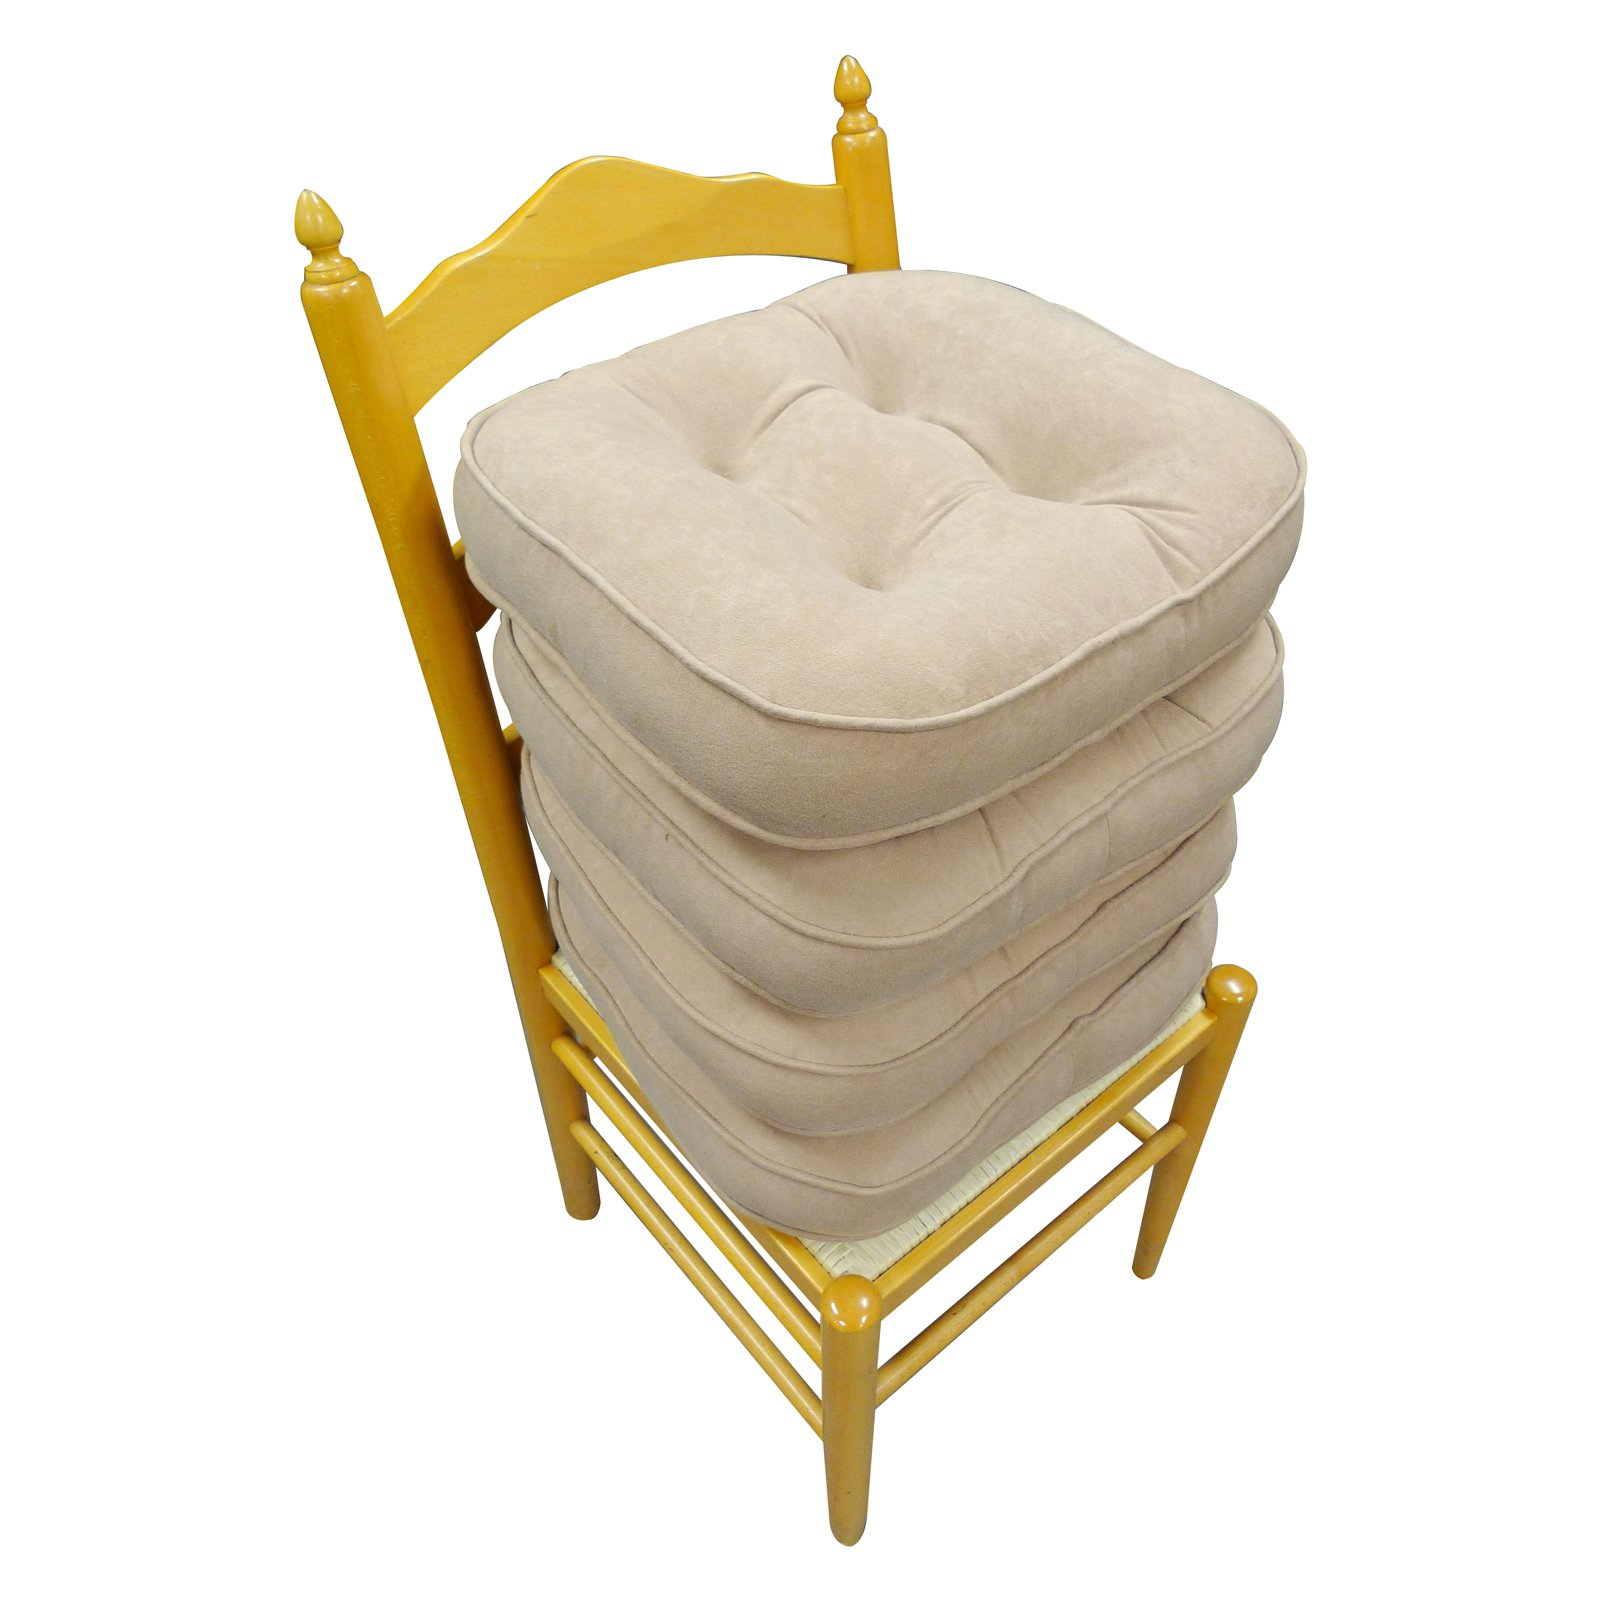 Seat Cushions For Kitchen Chairs Seat Cushions Kitchen Chair Walmart And Seat Pads For Kitchen